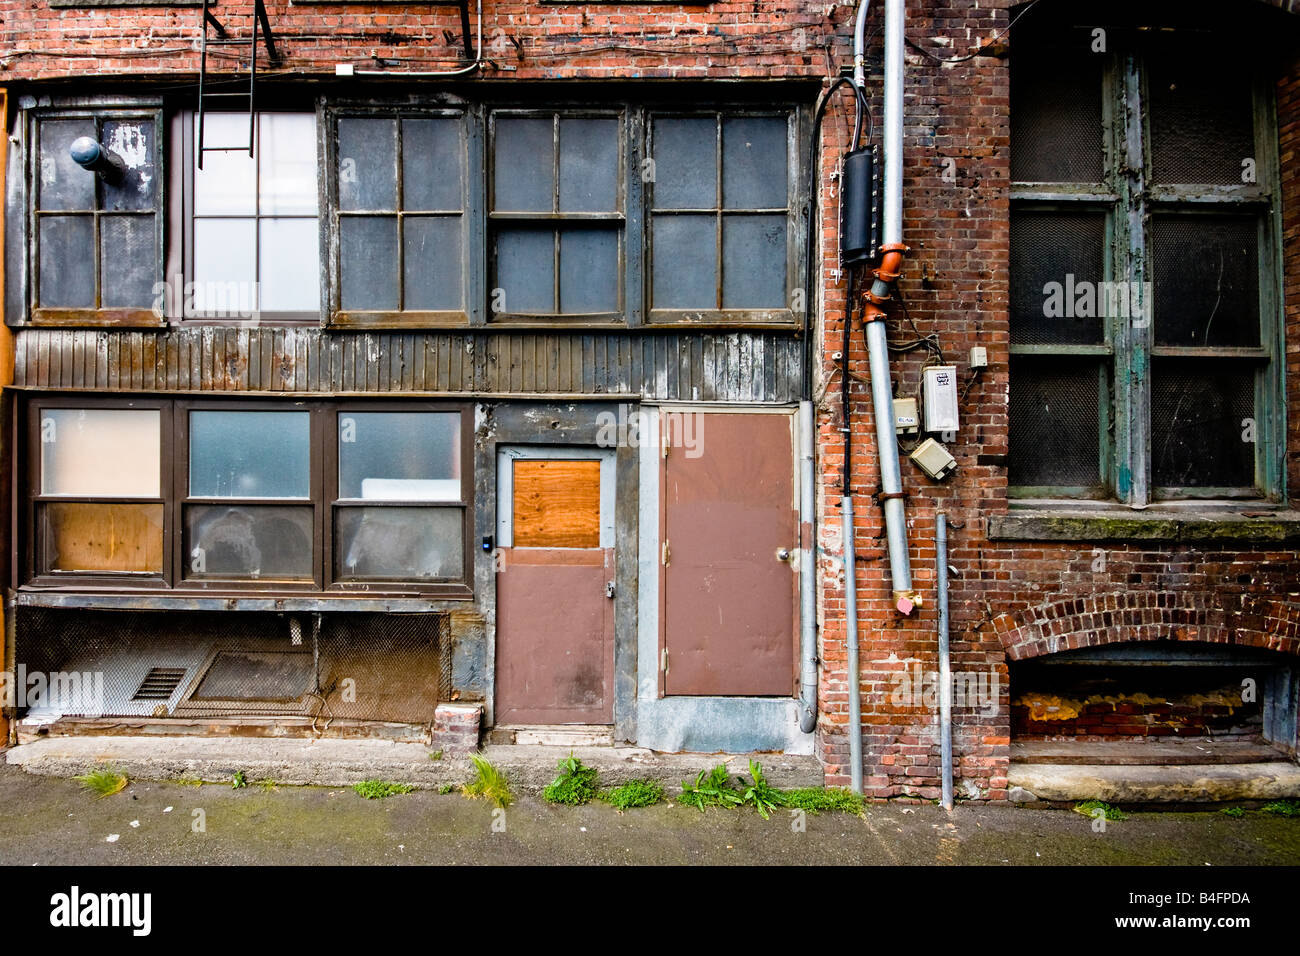 A beaten up entrance into the back of a factory in a brick wall in downtown Seattle, Washington. - Stock Image